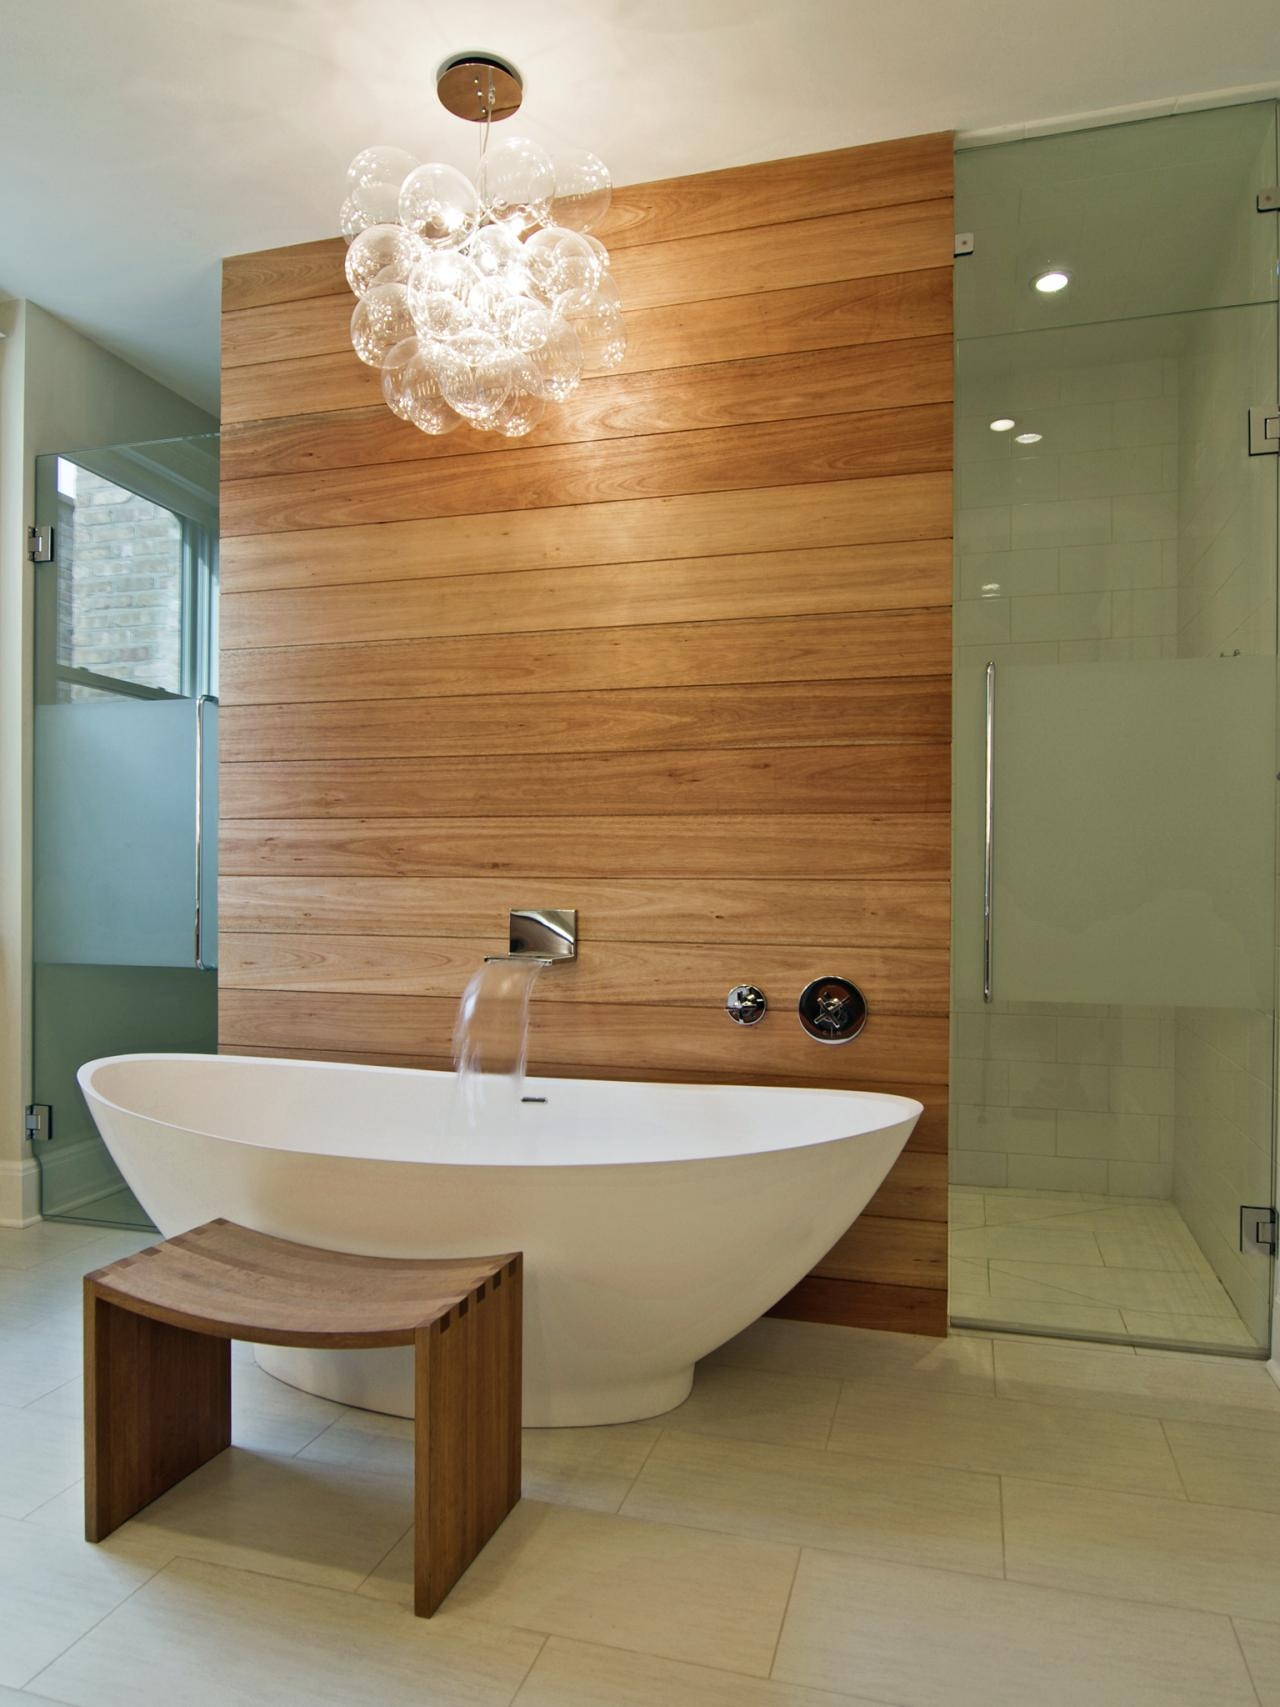 Bathrooms Modern Bathroom With Oval Modern Bathtub And Wooden Within Modern Bathroom Chandeliers (Image 11 of 15)